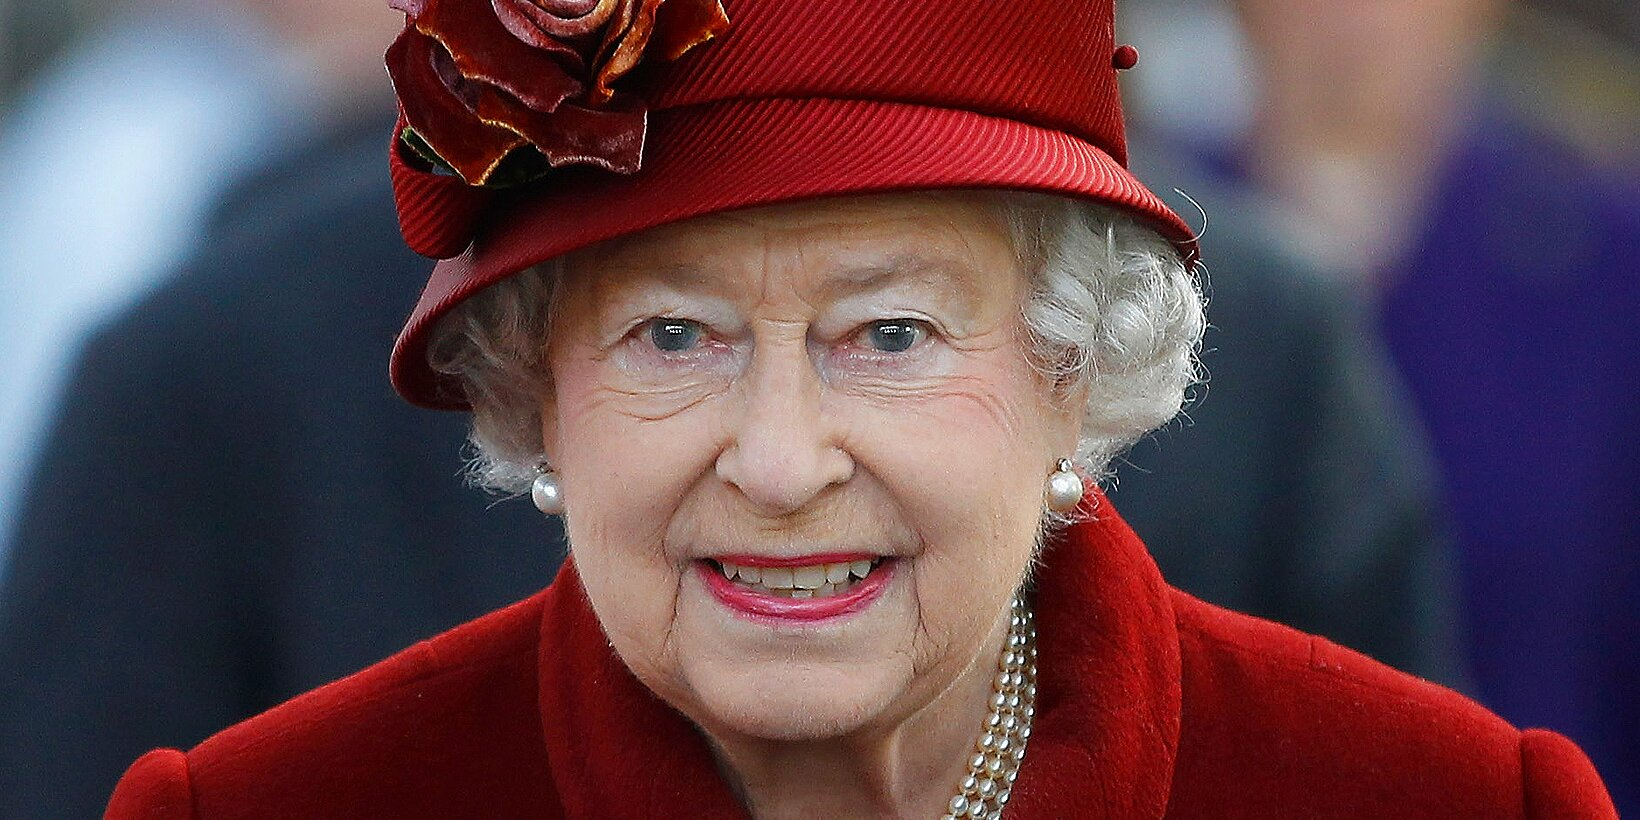 What Chocolates Does Queen Elizabeth Reach for When She Has a Sweet Tooth?